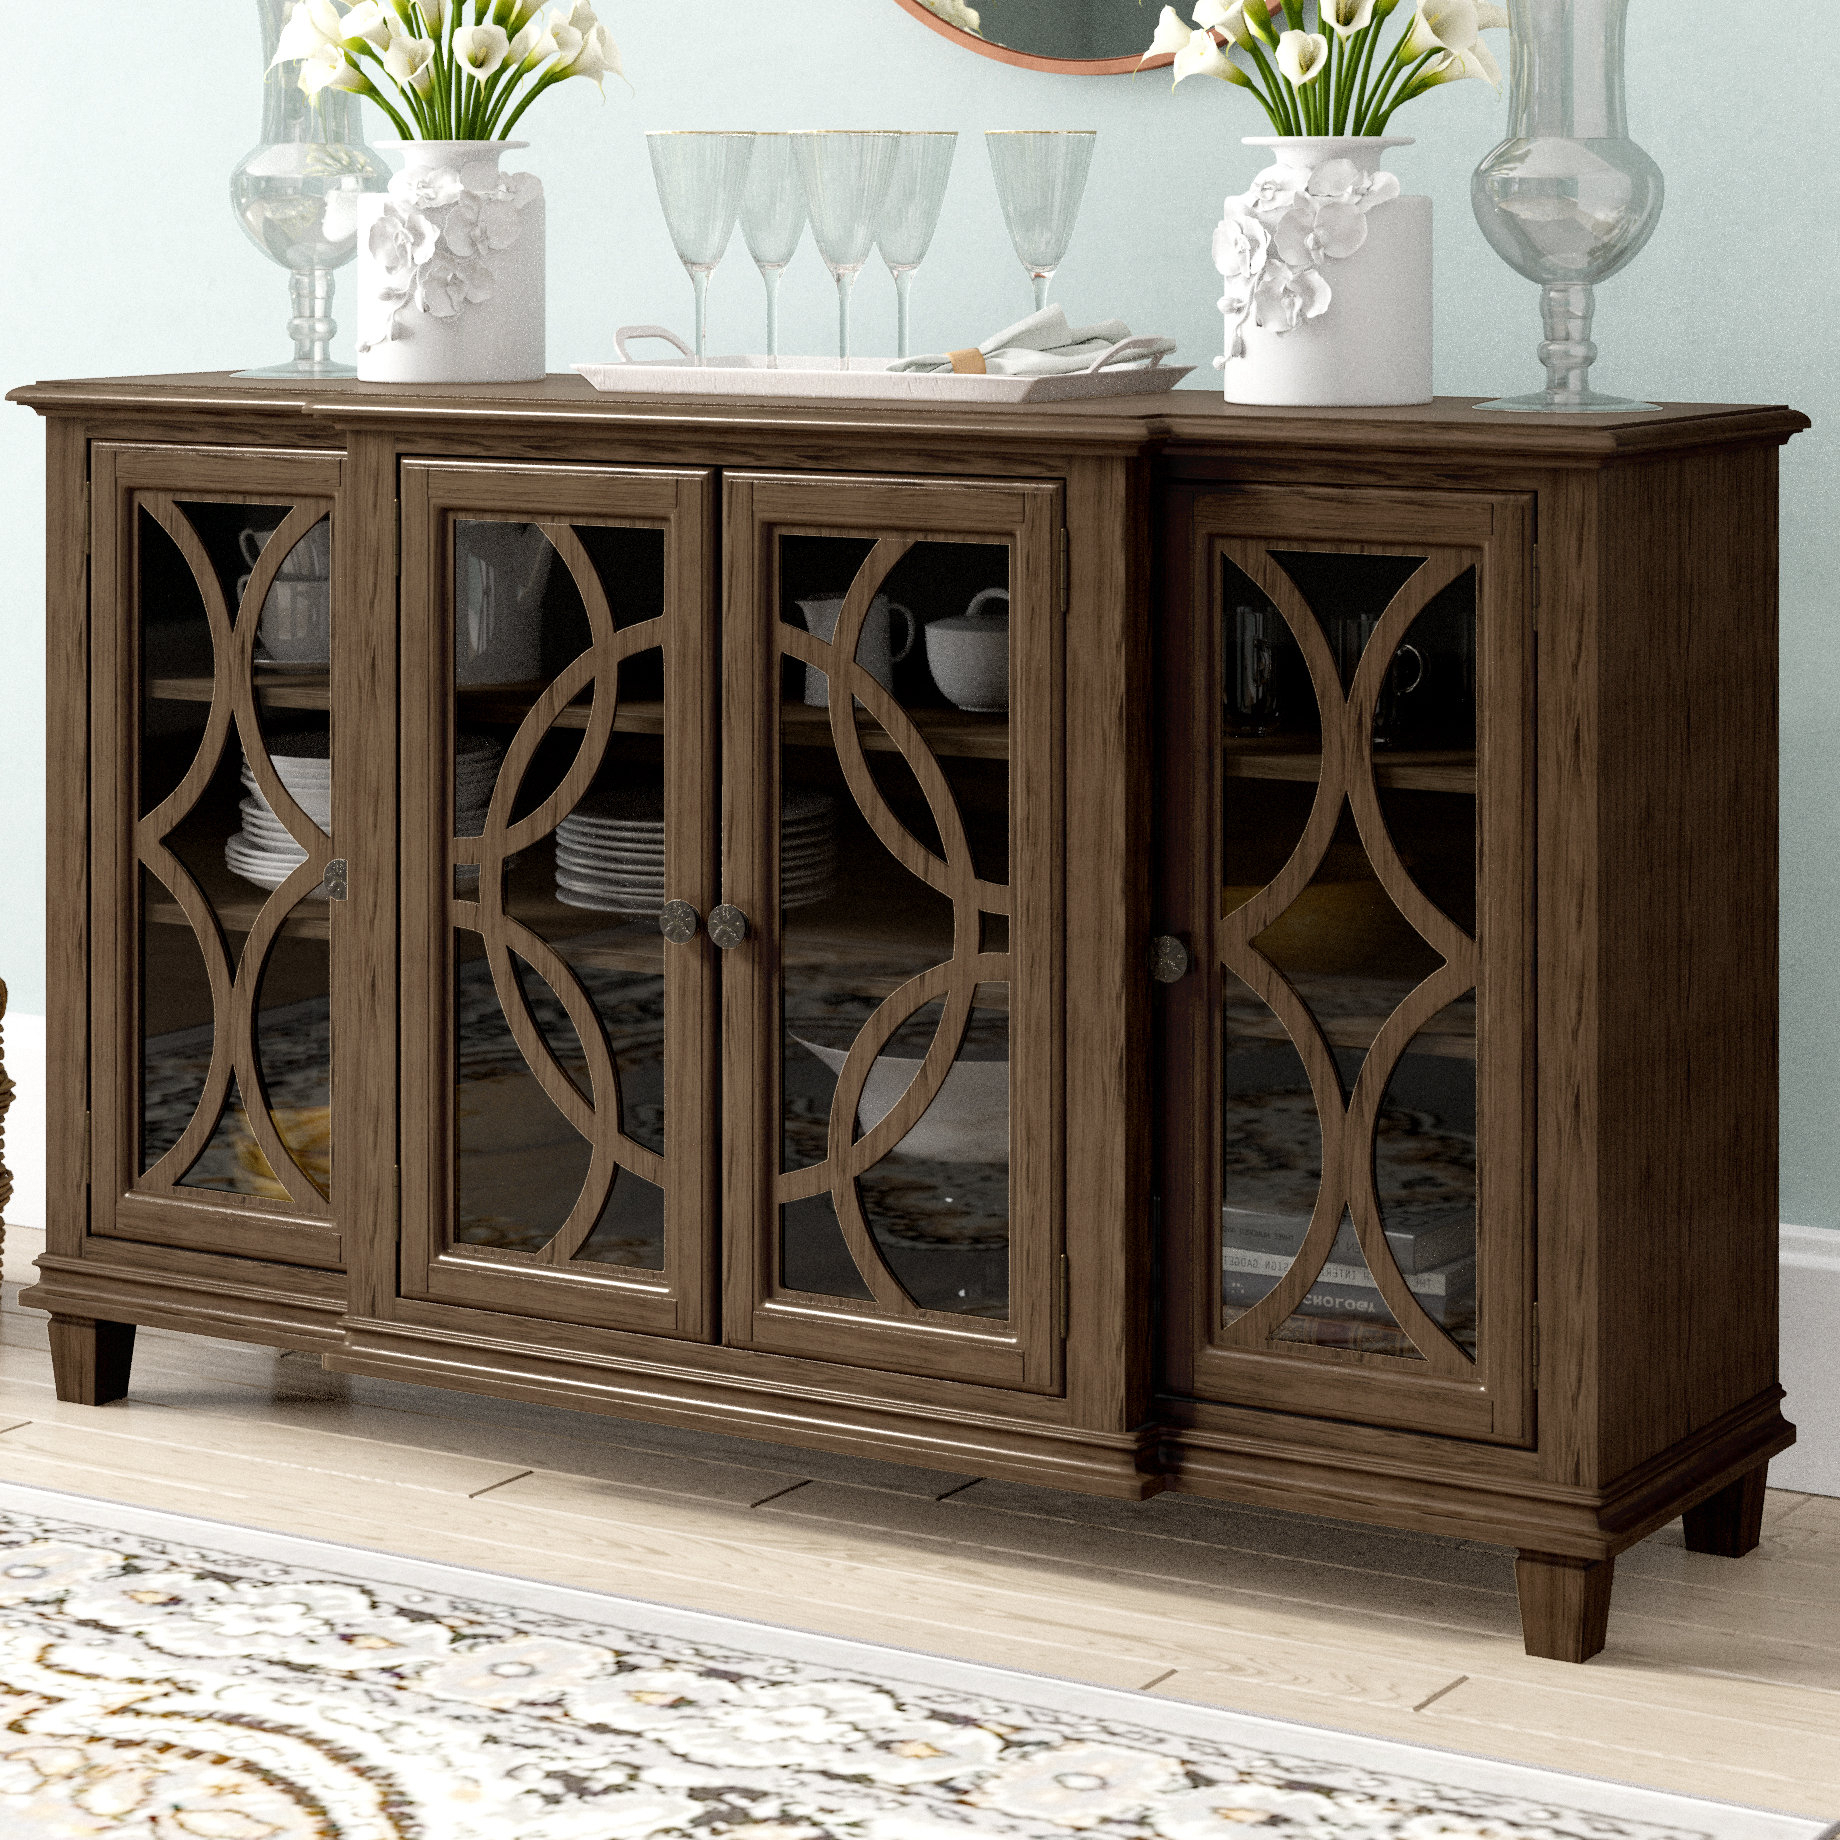 Farmhouse & Rustic Dark Brown Wood Sideboards & Buffets Within Current Phyllis Sideboards (Gallery 4 of 20)